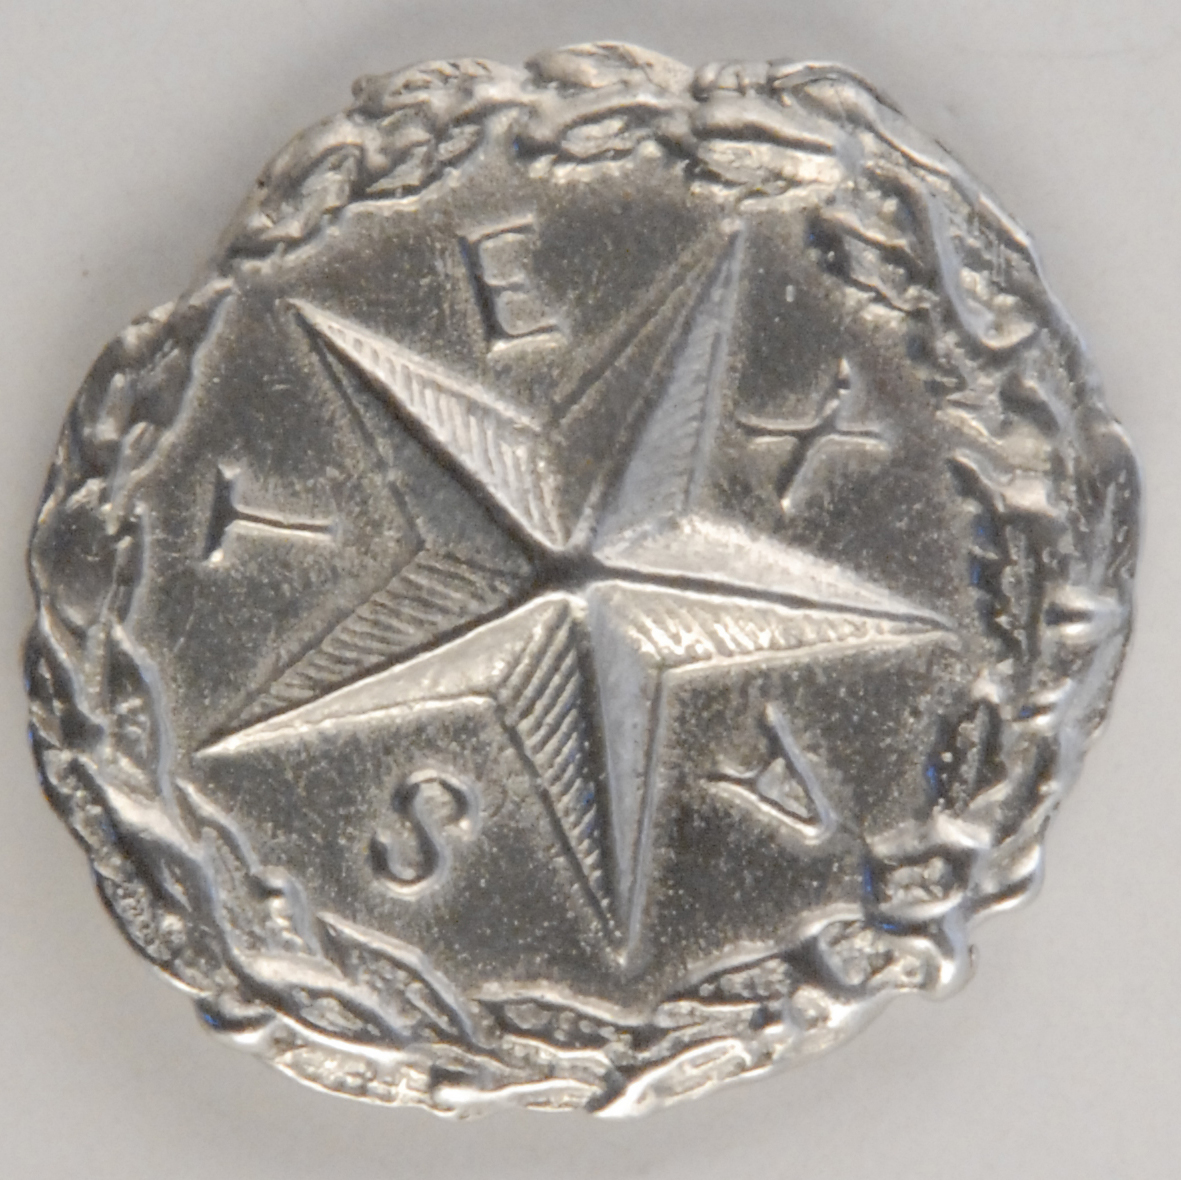 181 L Texas Star Pewter Button